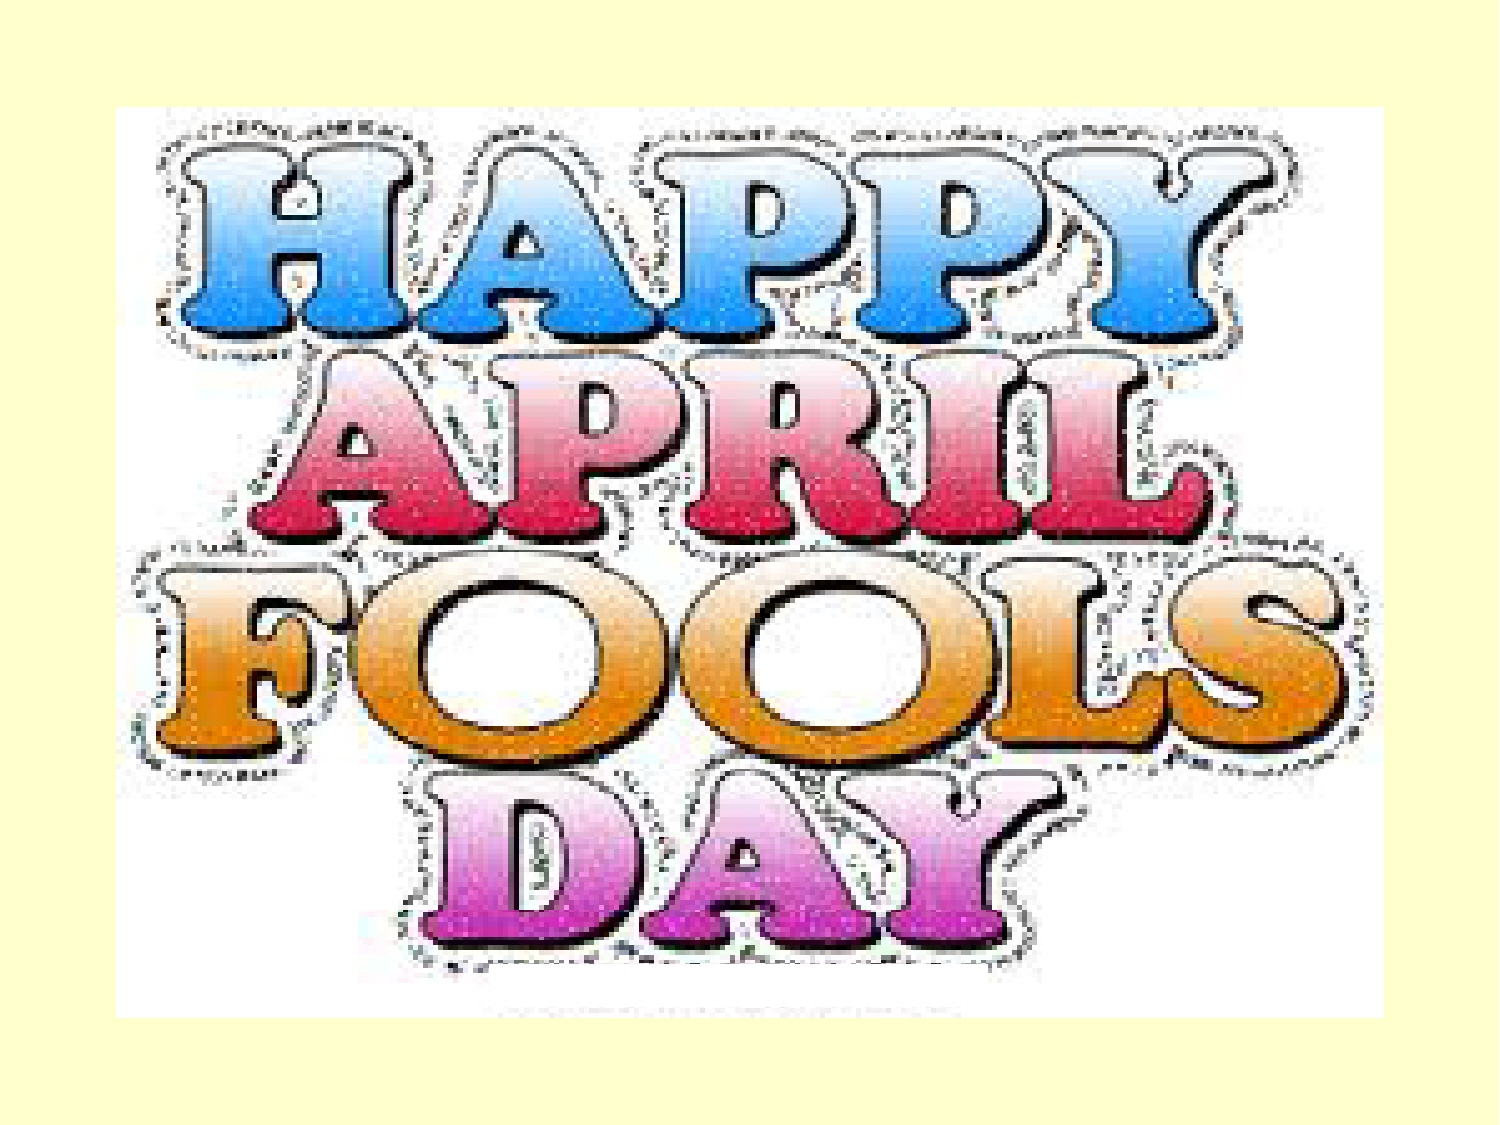 April fools day clipart wallpapers vector library 17 Best images about APRIL FOOL DAY GREETINGS on Pinterest | Jokes ... vector library